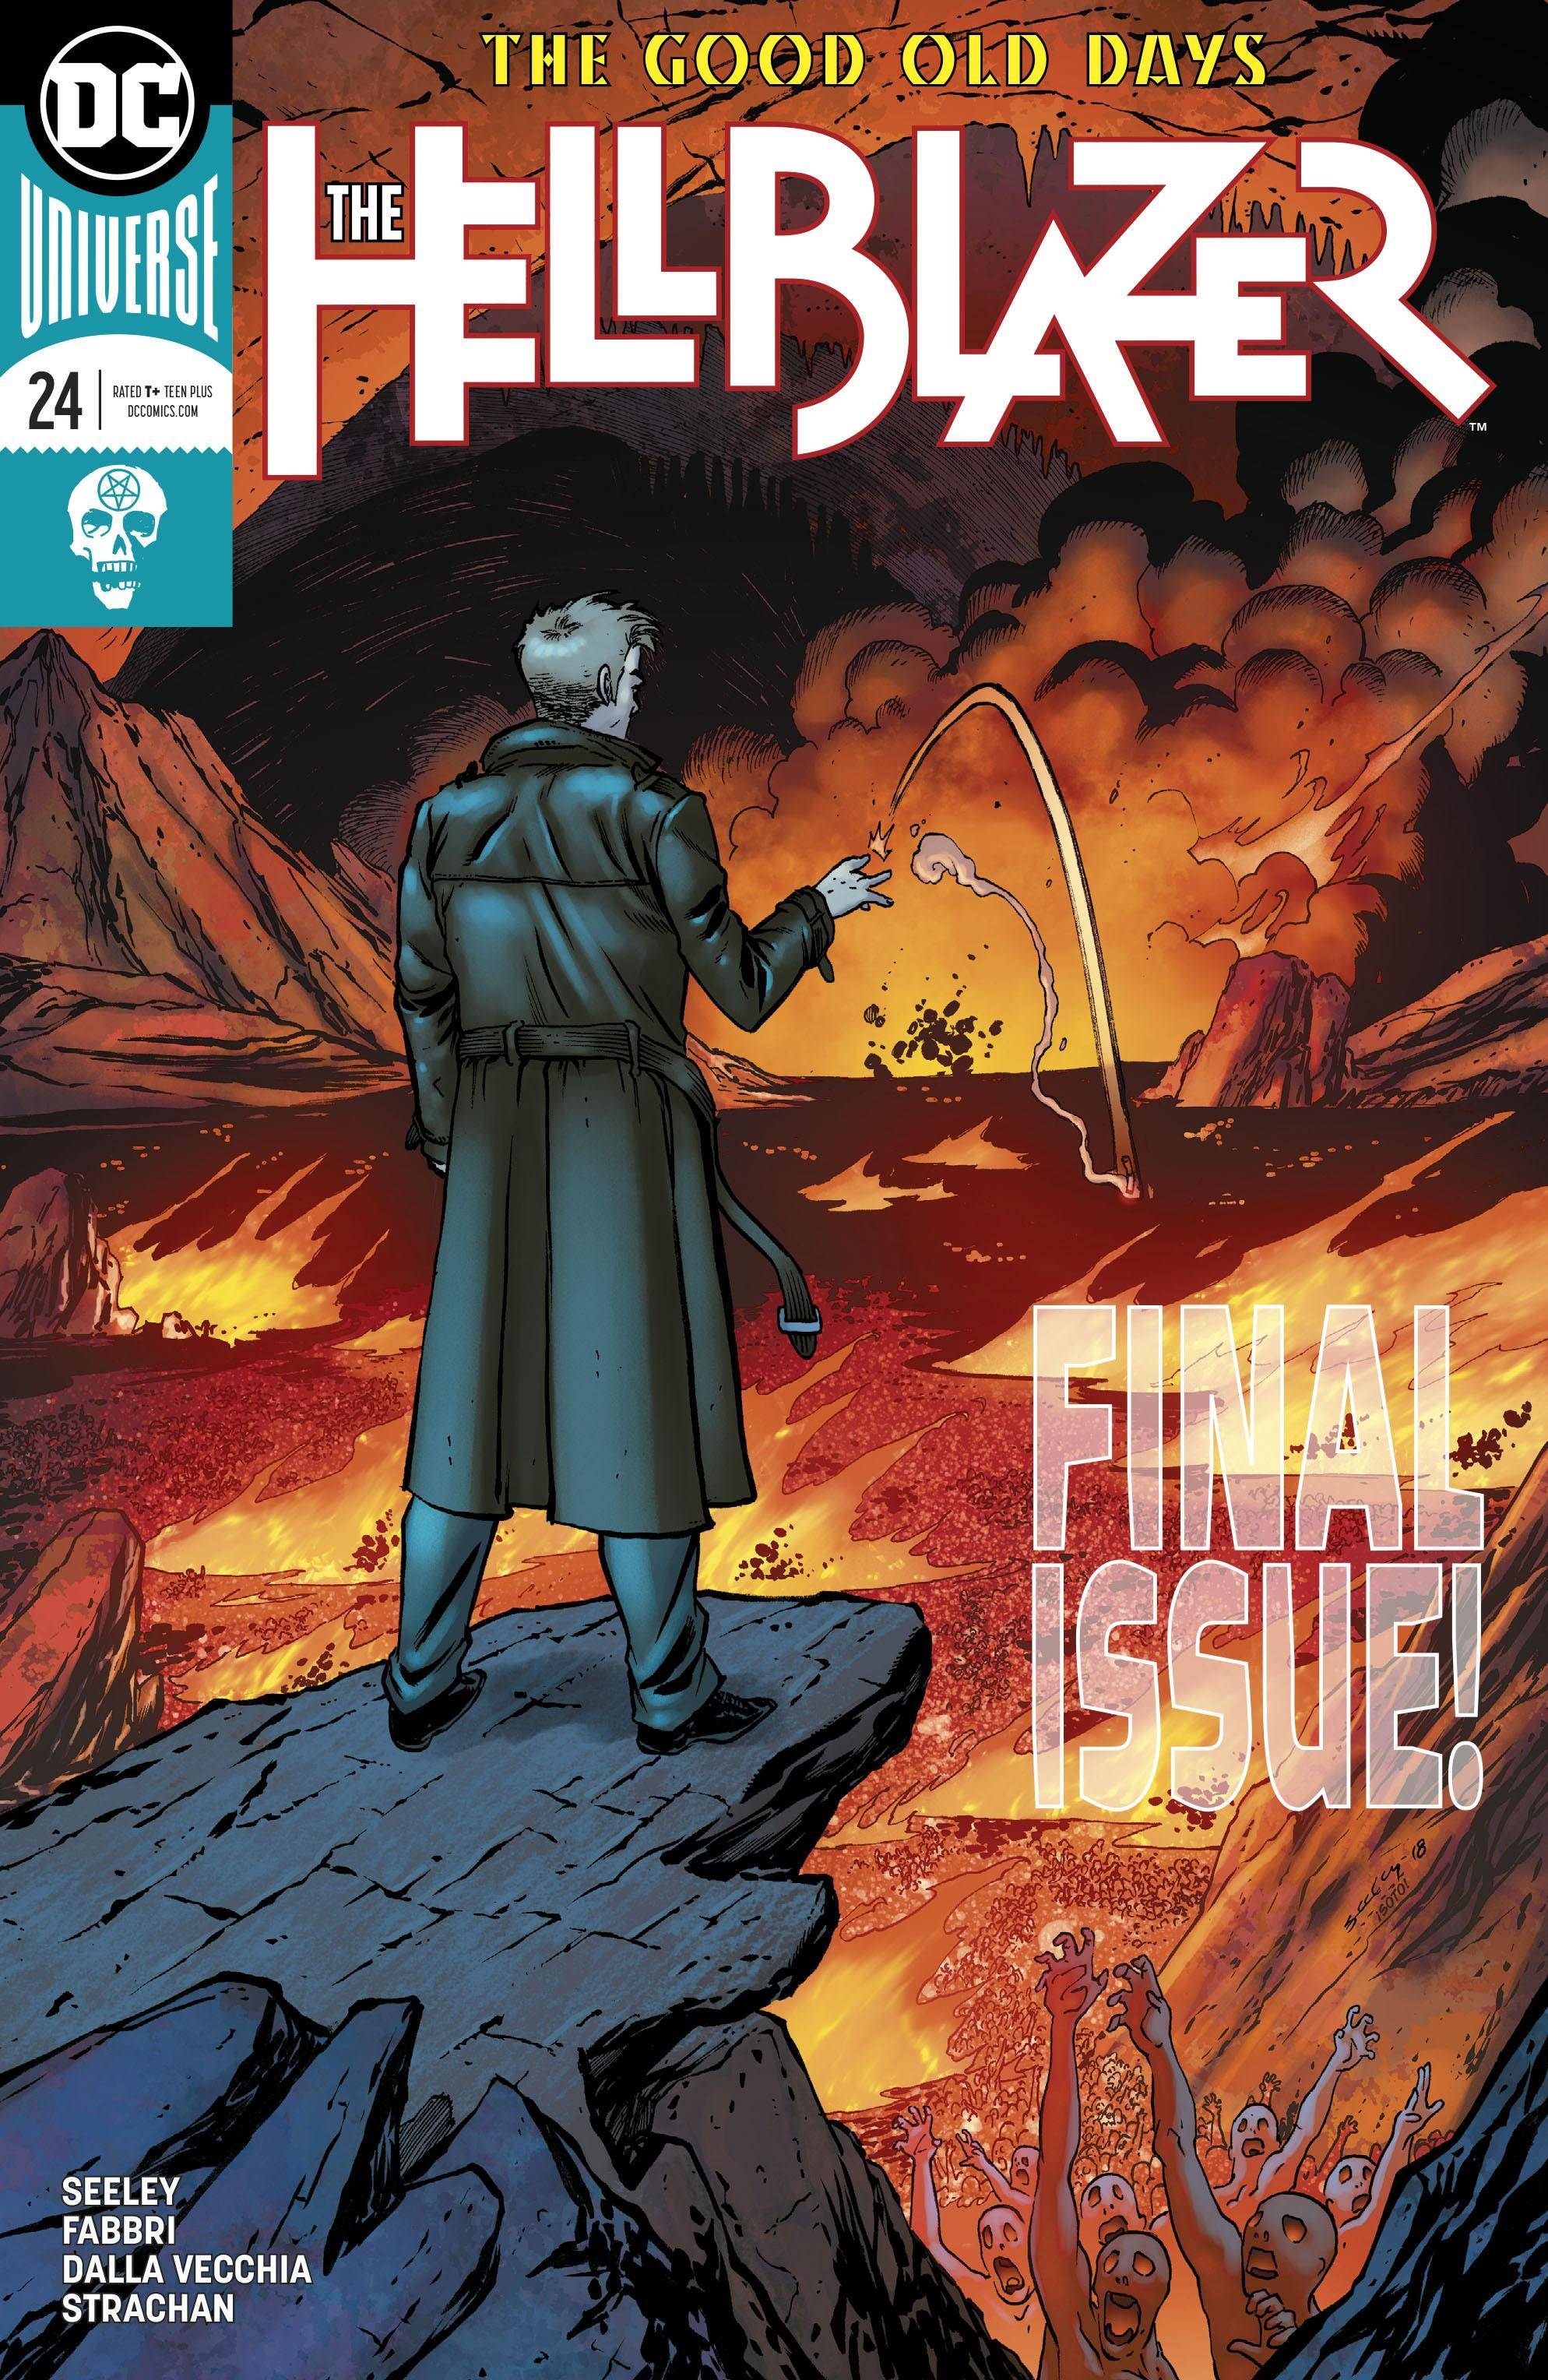 The Hellblazer 024 2018 2 covers digital Son of Ultron